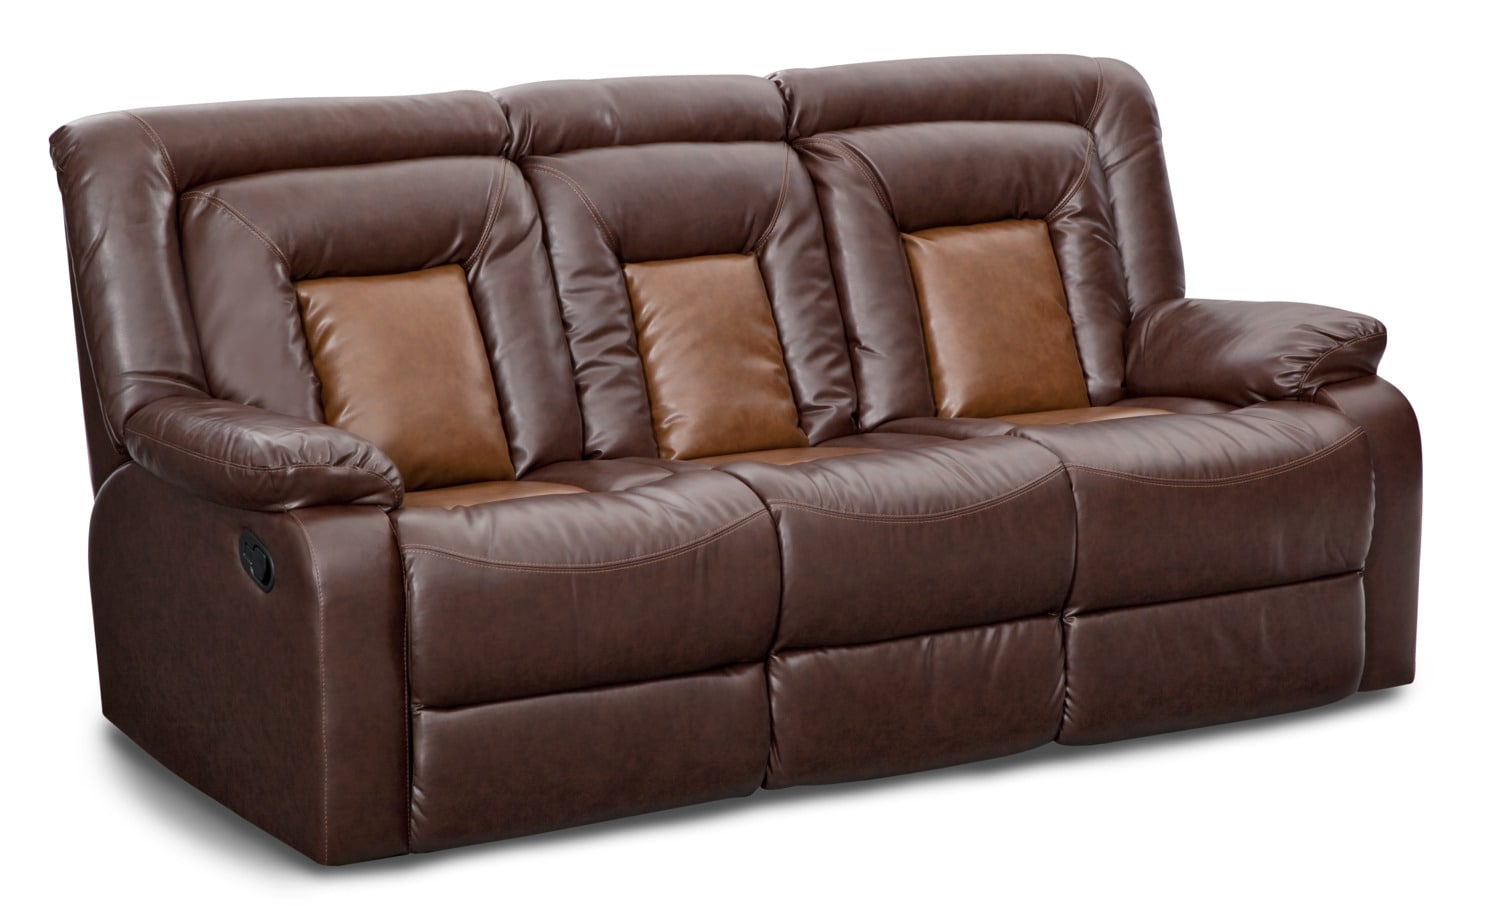 Reclining Sofas Melina Bisque Power Sofa Wusb